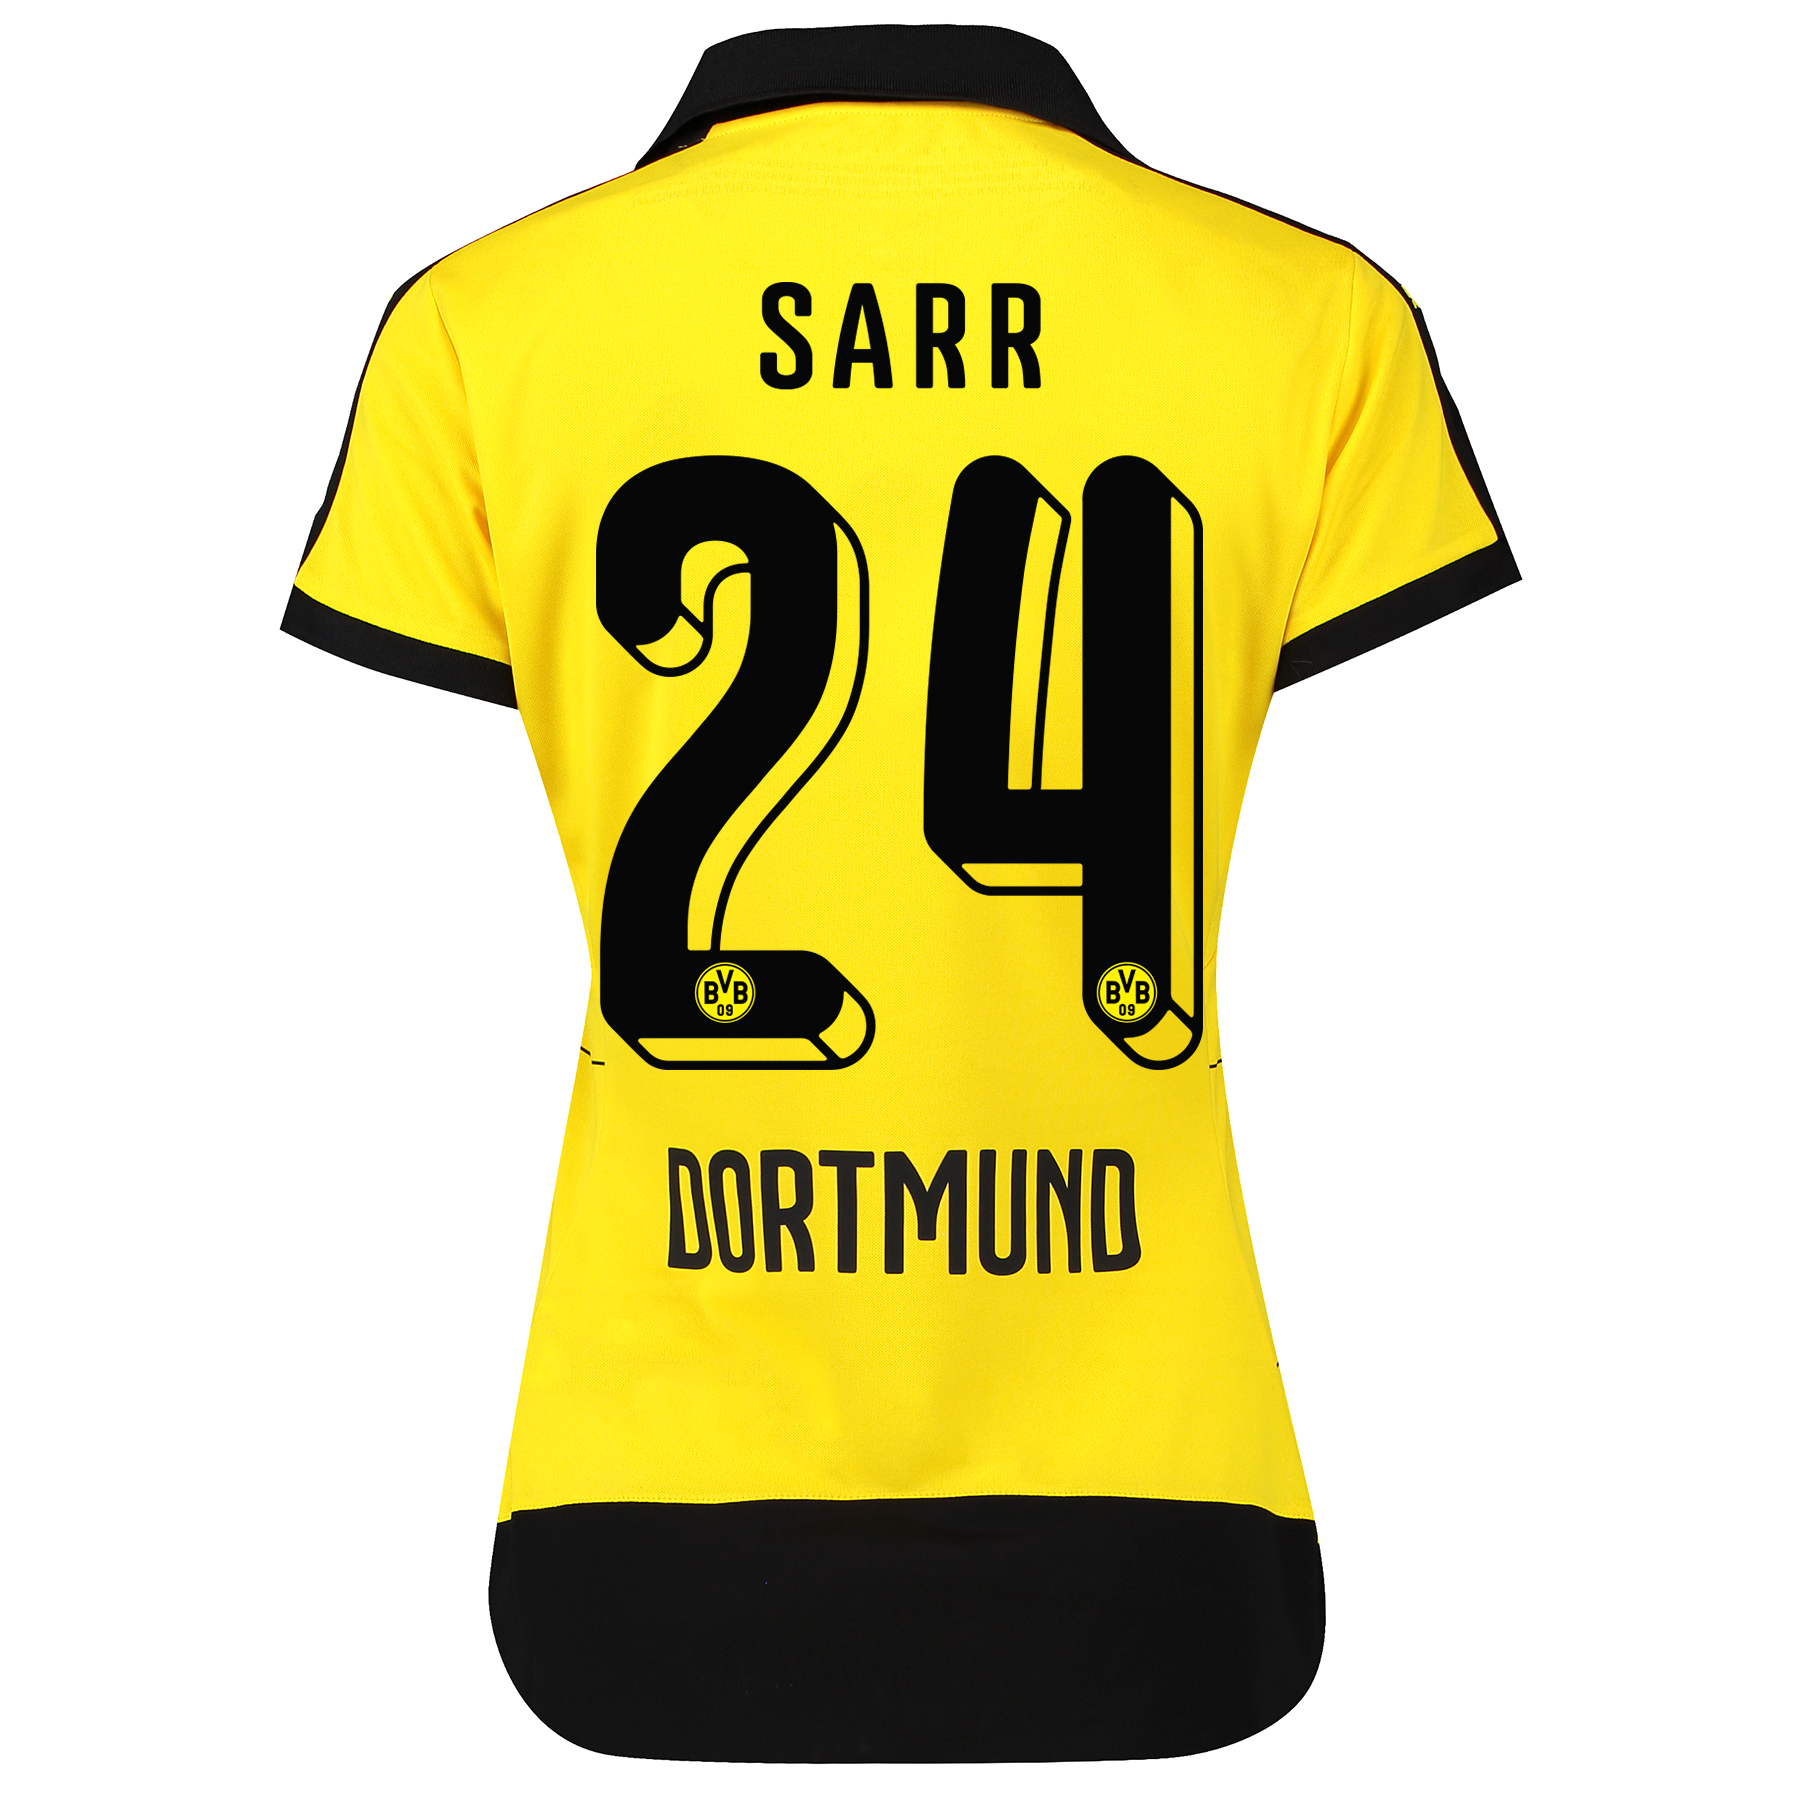 BVB Home Shirt 2015/16 – Womens with Sponsor Yellow with Sarr 24 print